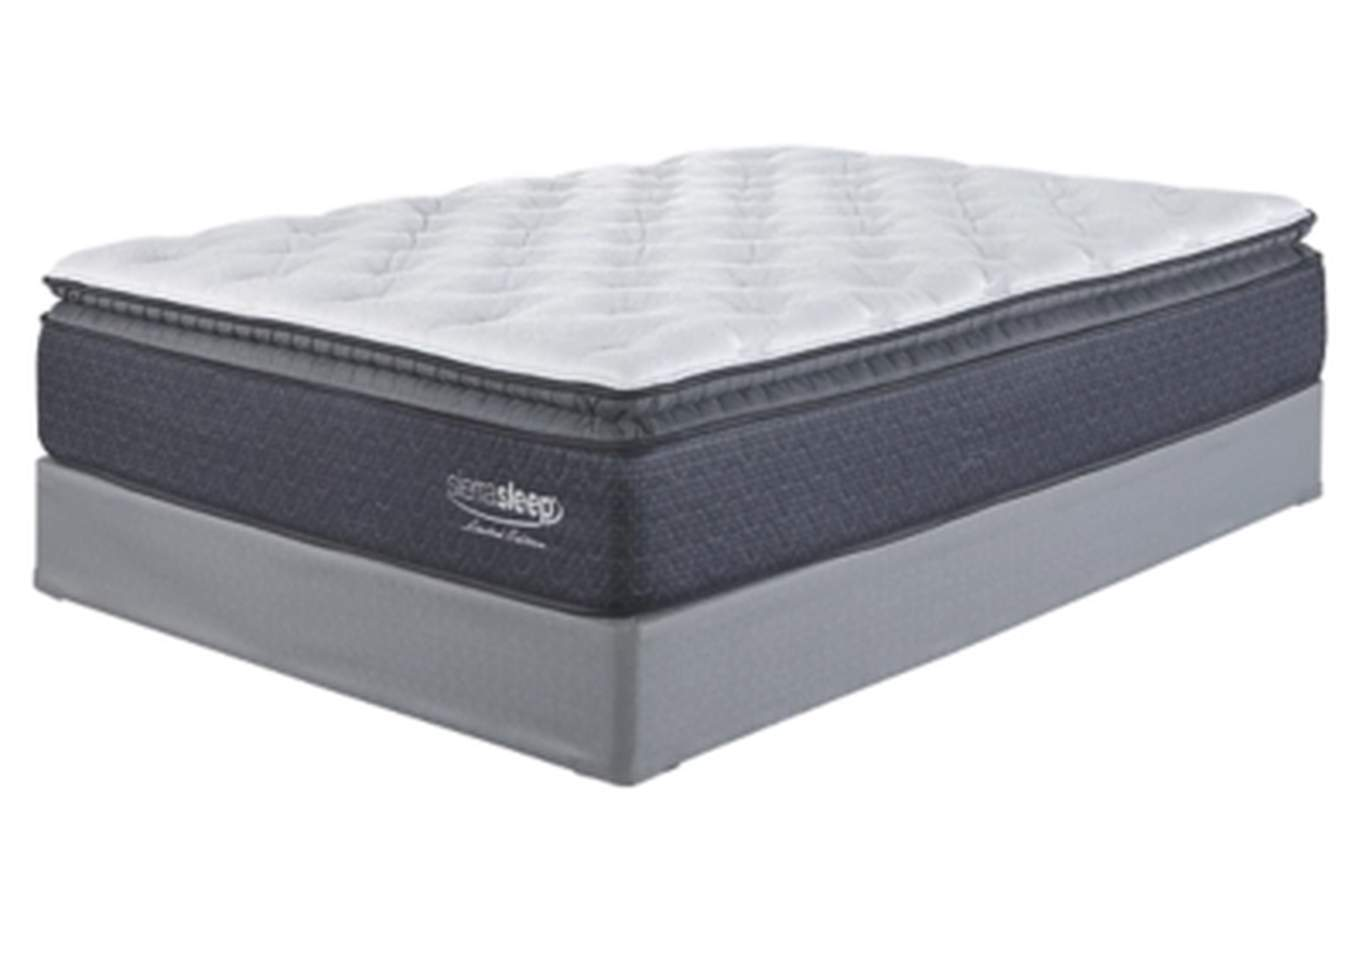 Limited Edition Pillowtop White California King Mattress w/Foundation,Sierra Sleep by Ashley